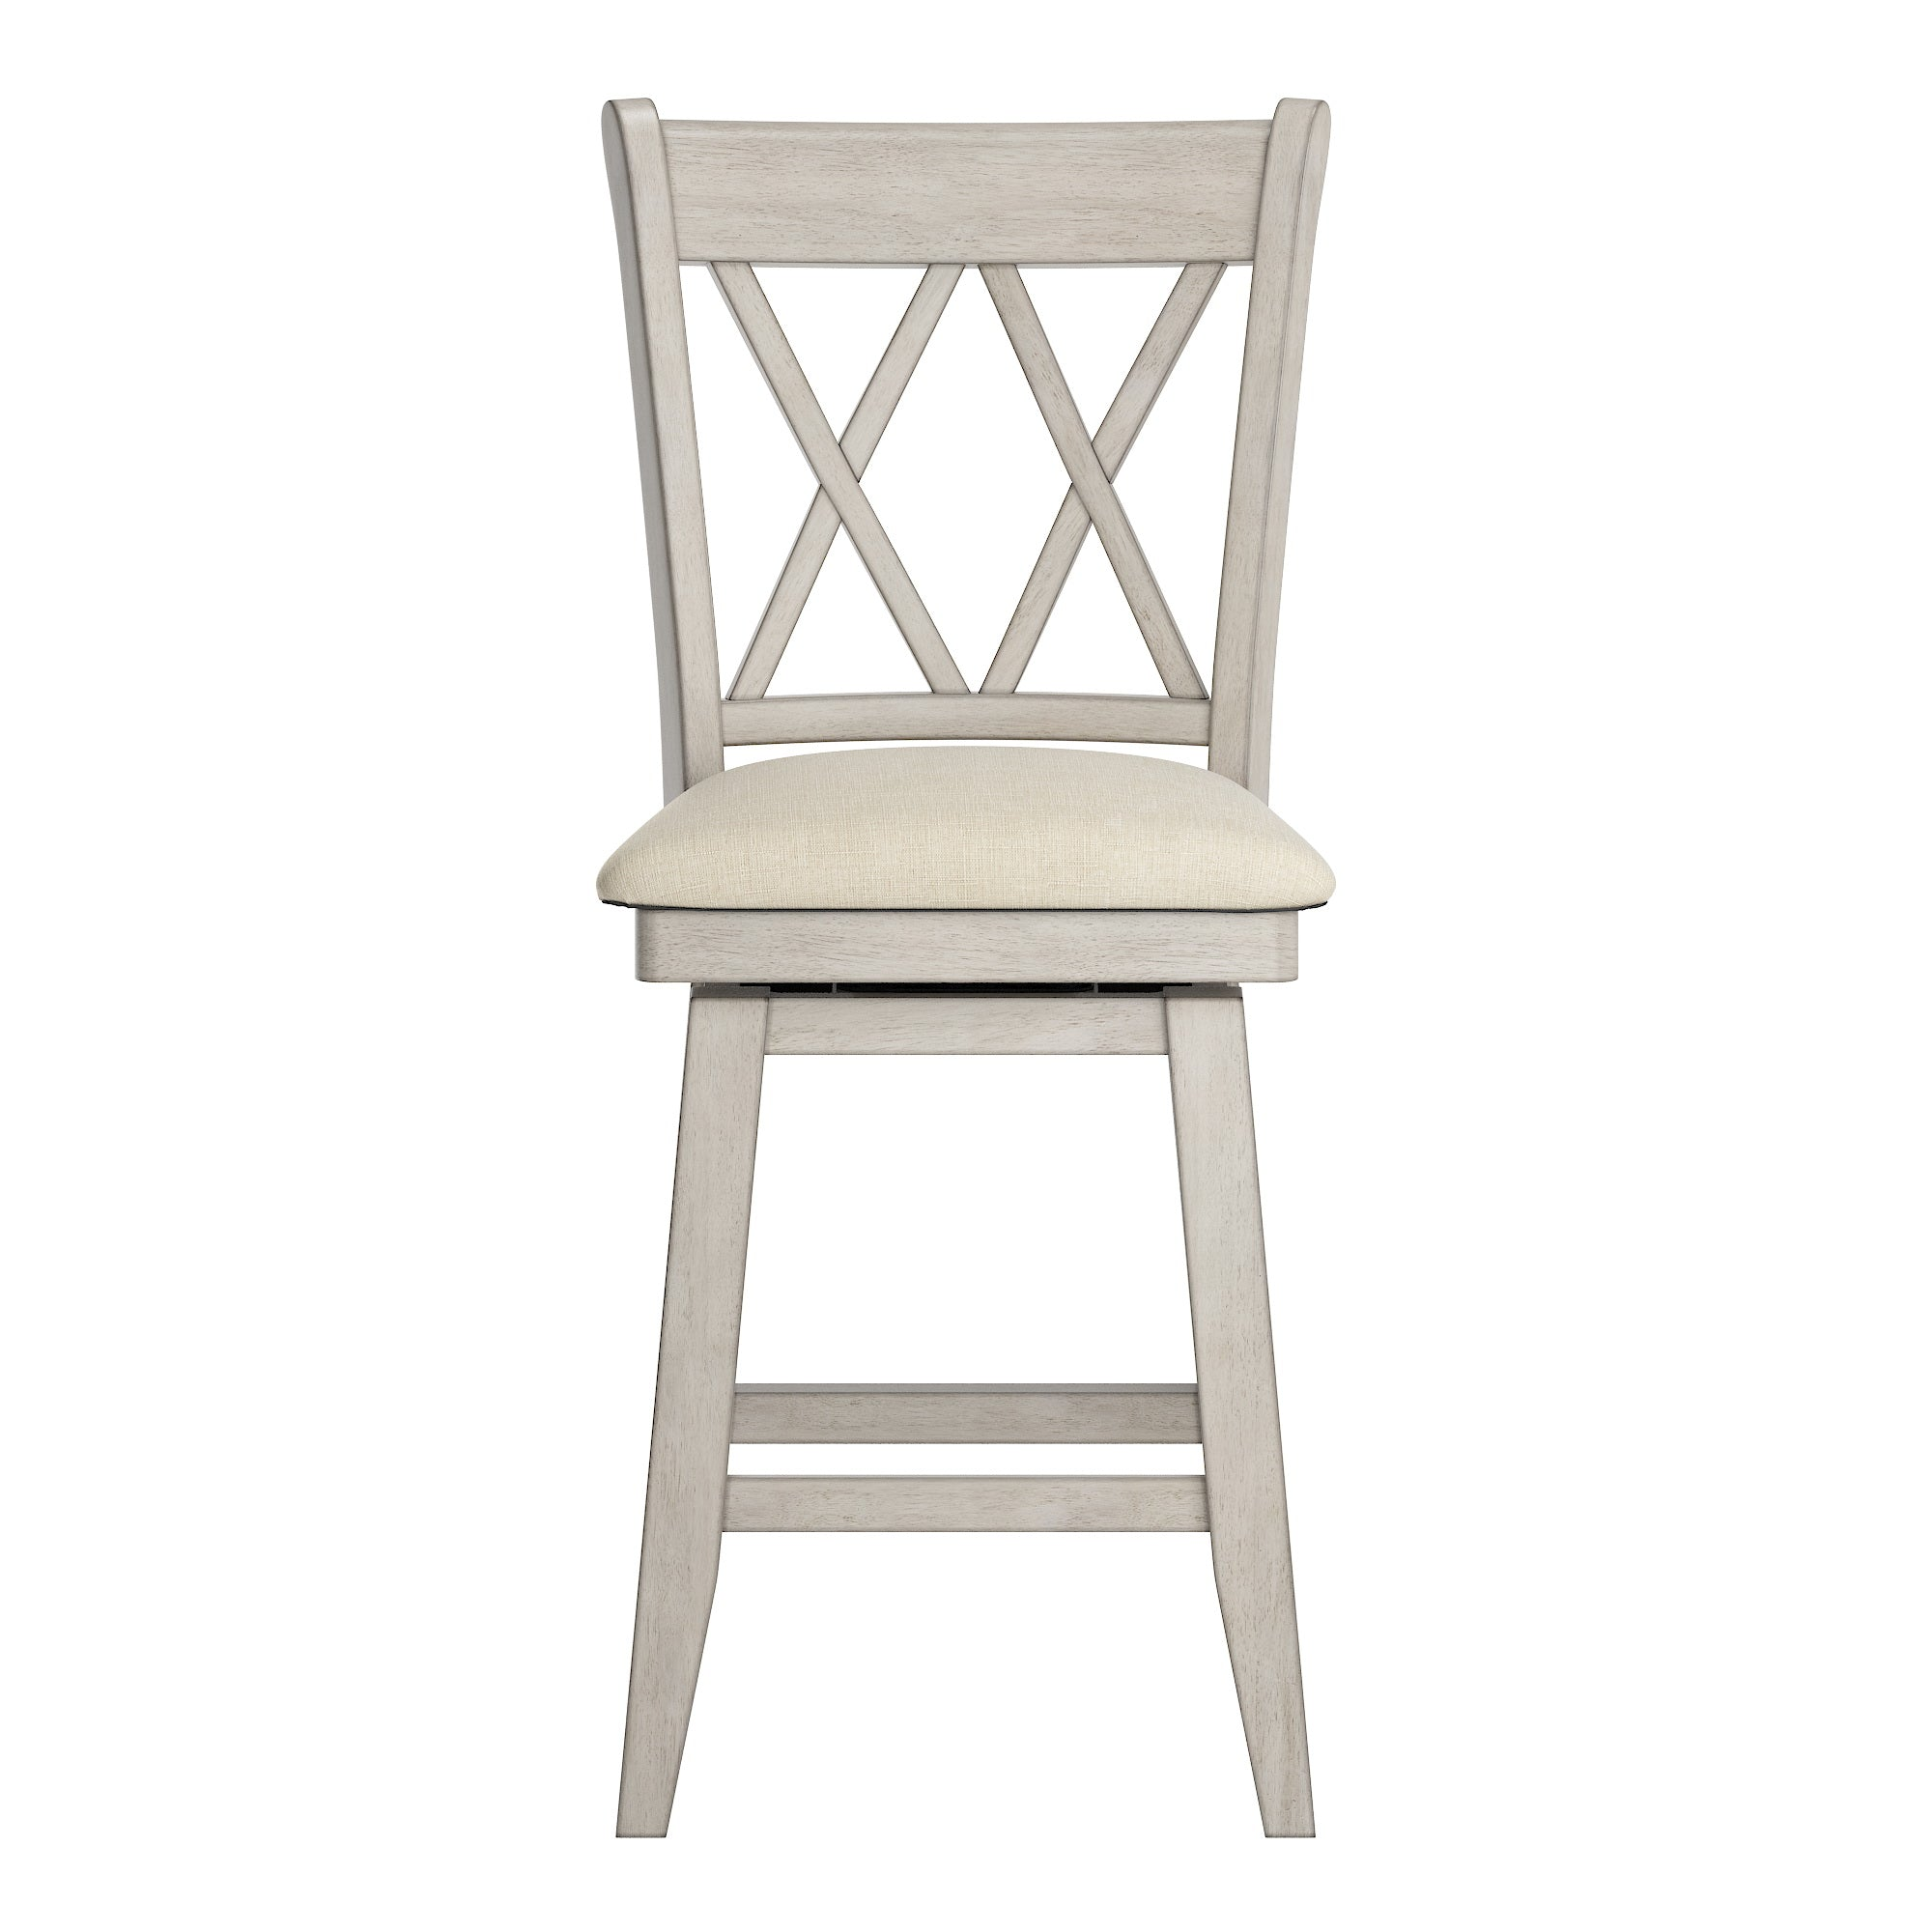 Double X Back Counter Height Wood Swivel Chair - Antique White